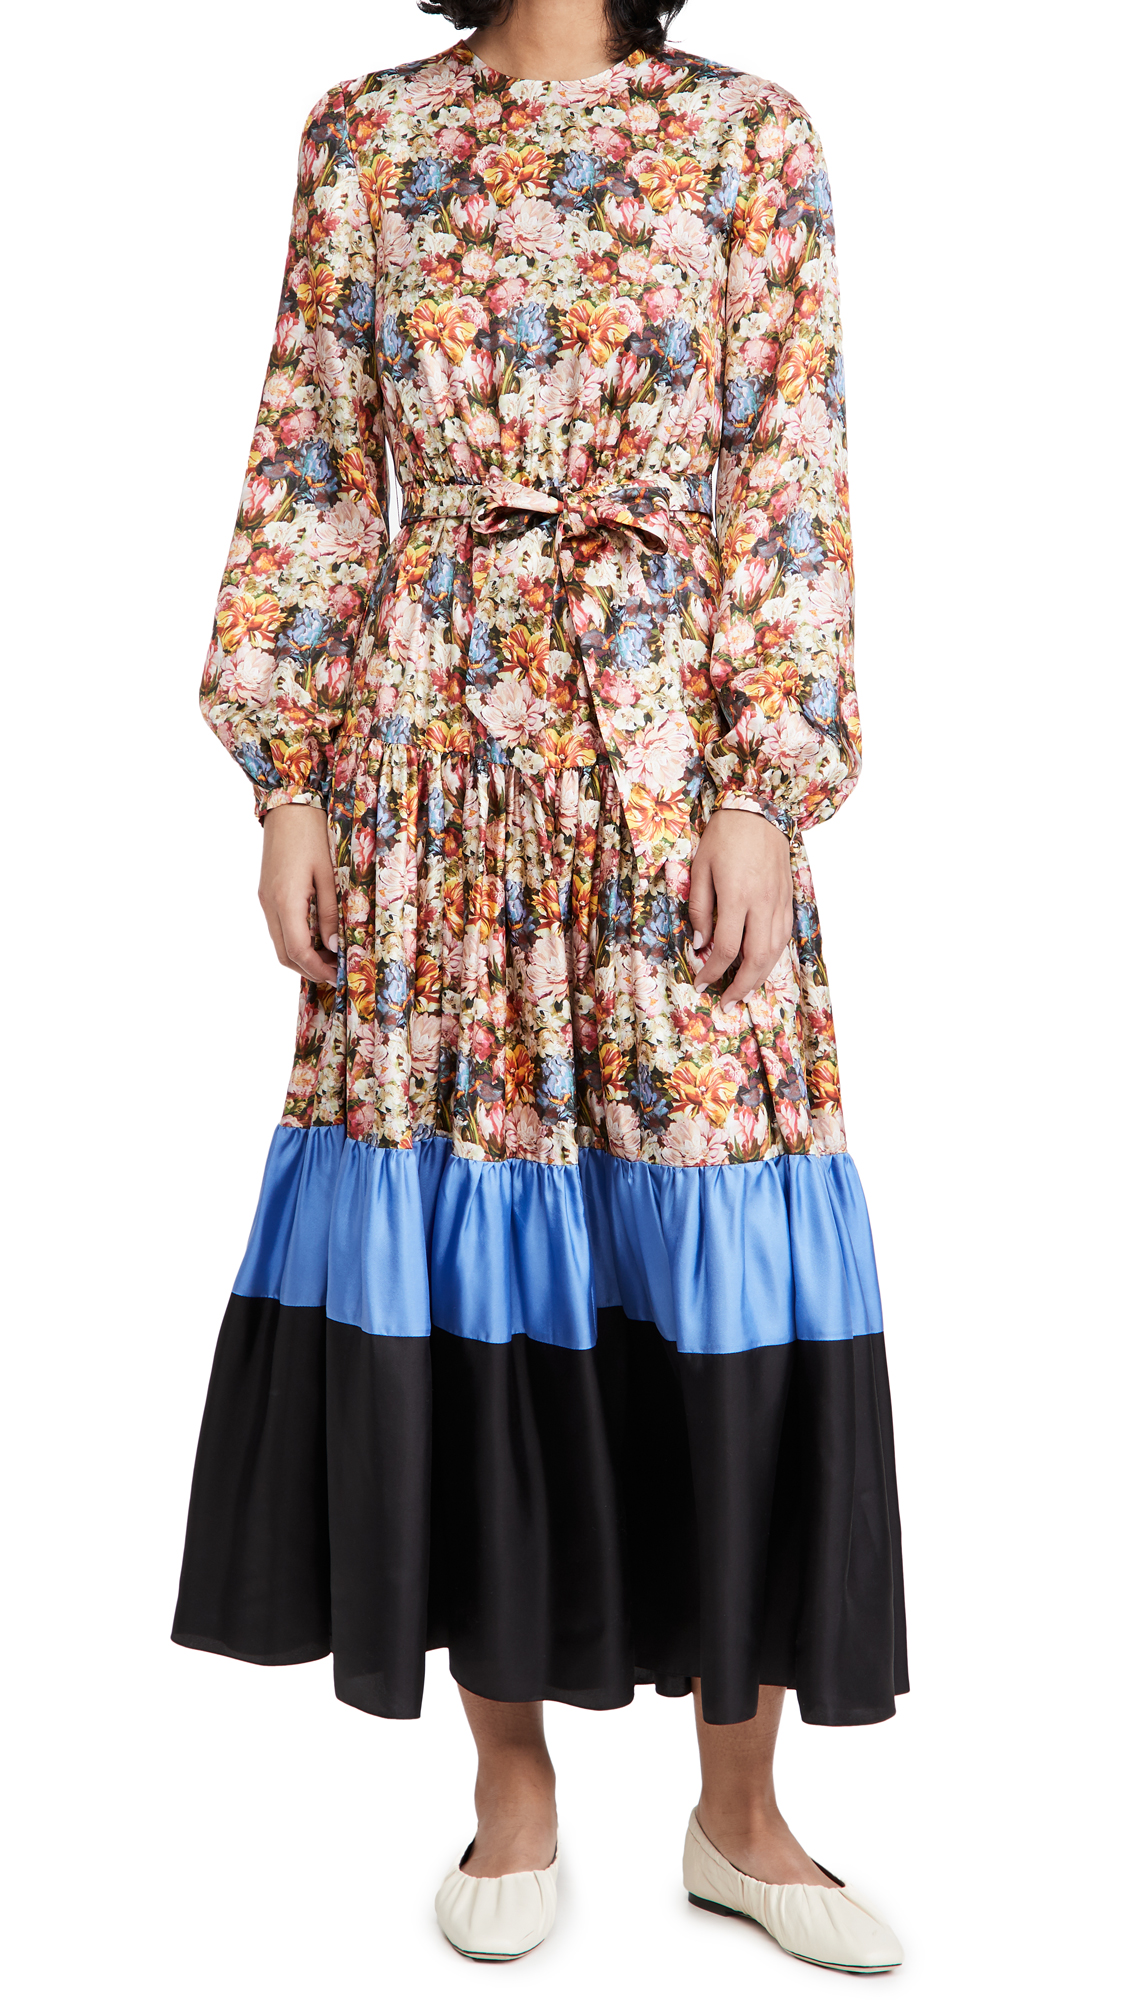 Borgo de Nor Ambrosia Dress